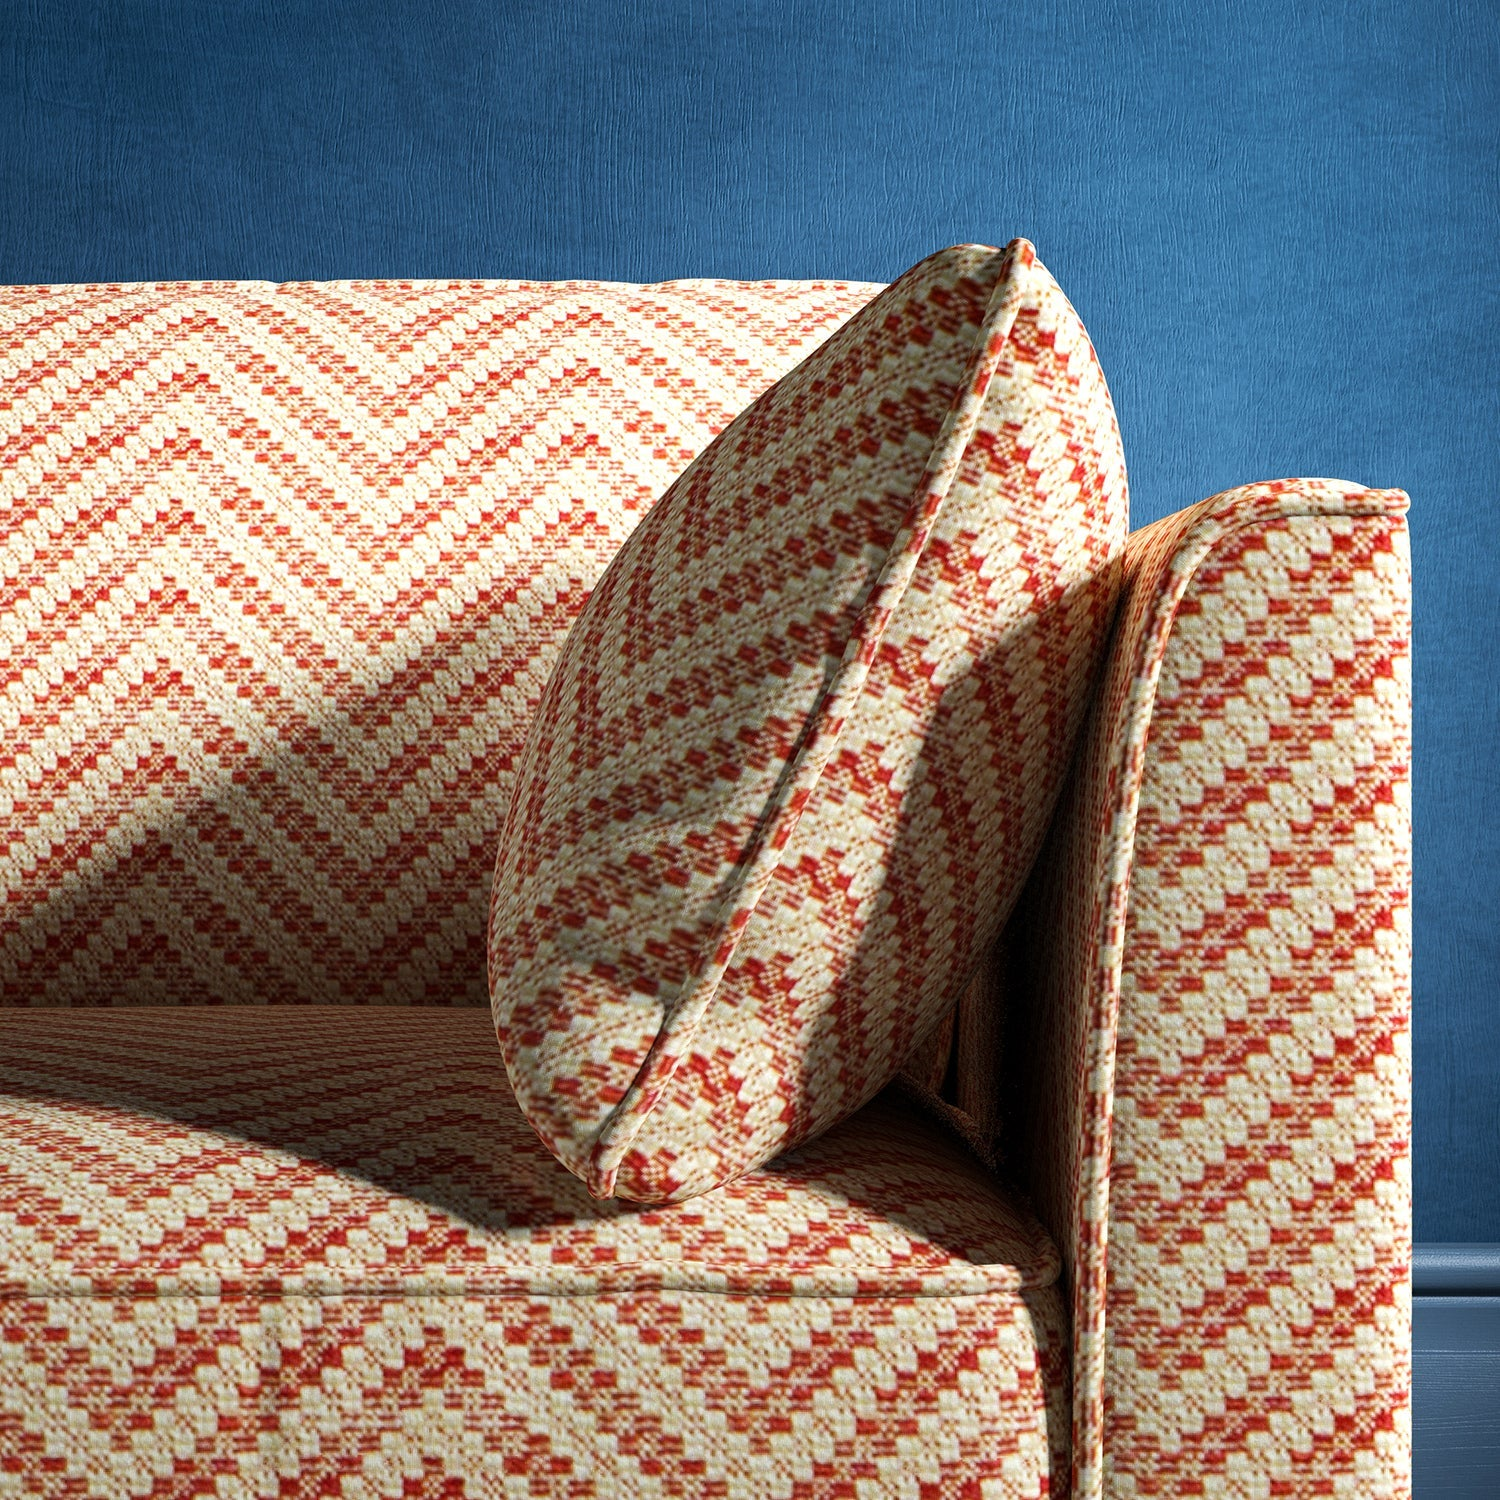 Sofa upholstered in a red and neutral herringbone upholstery fabric